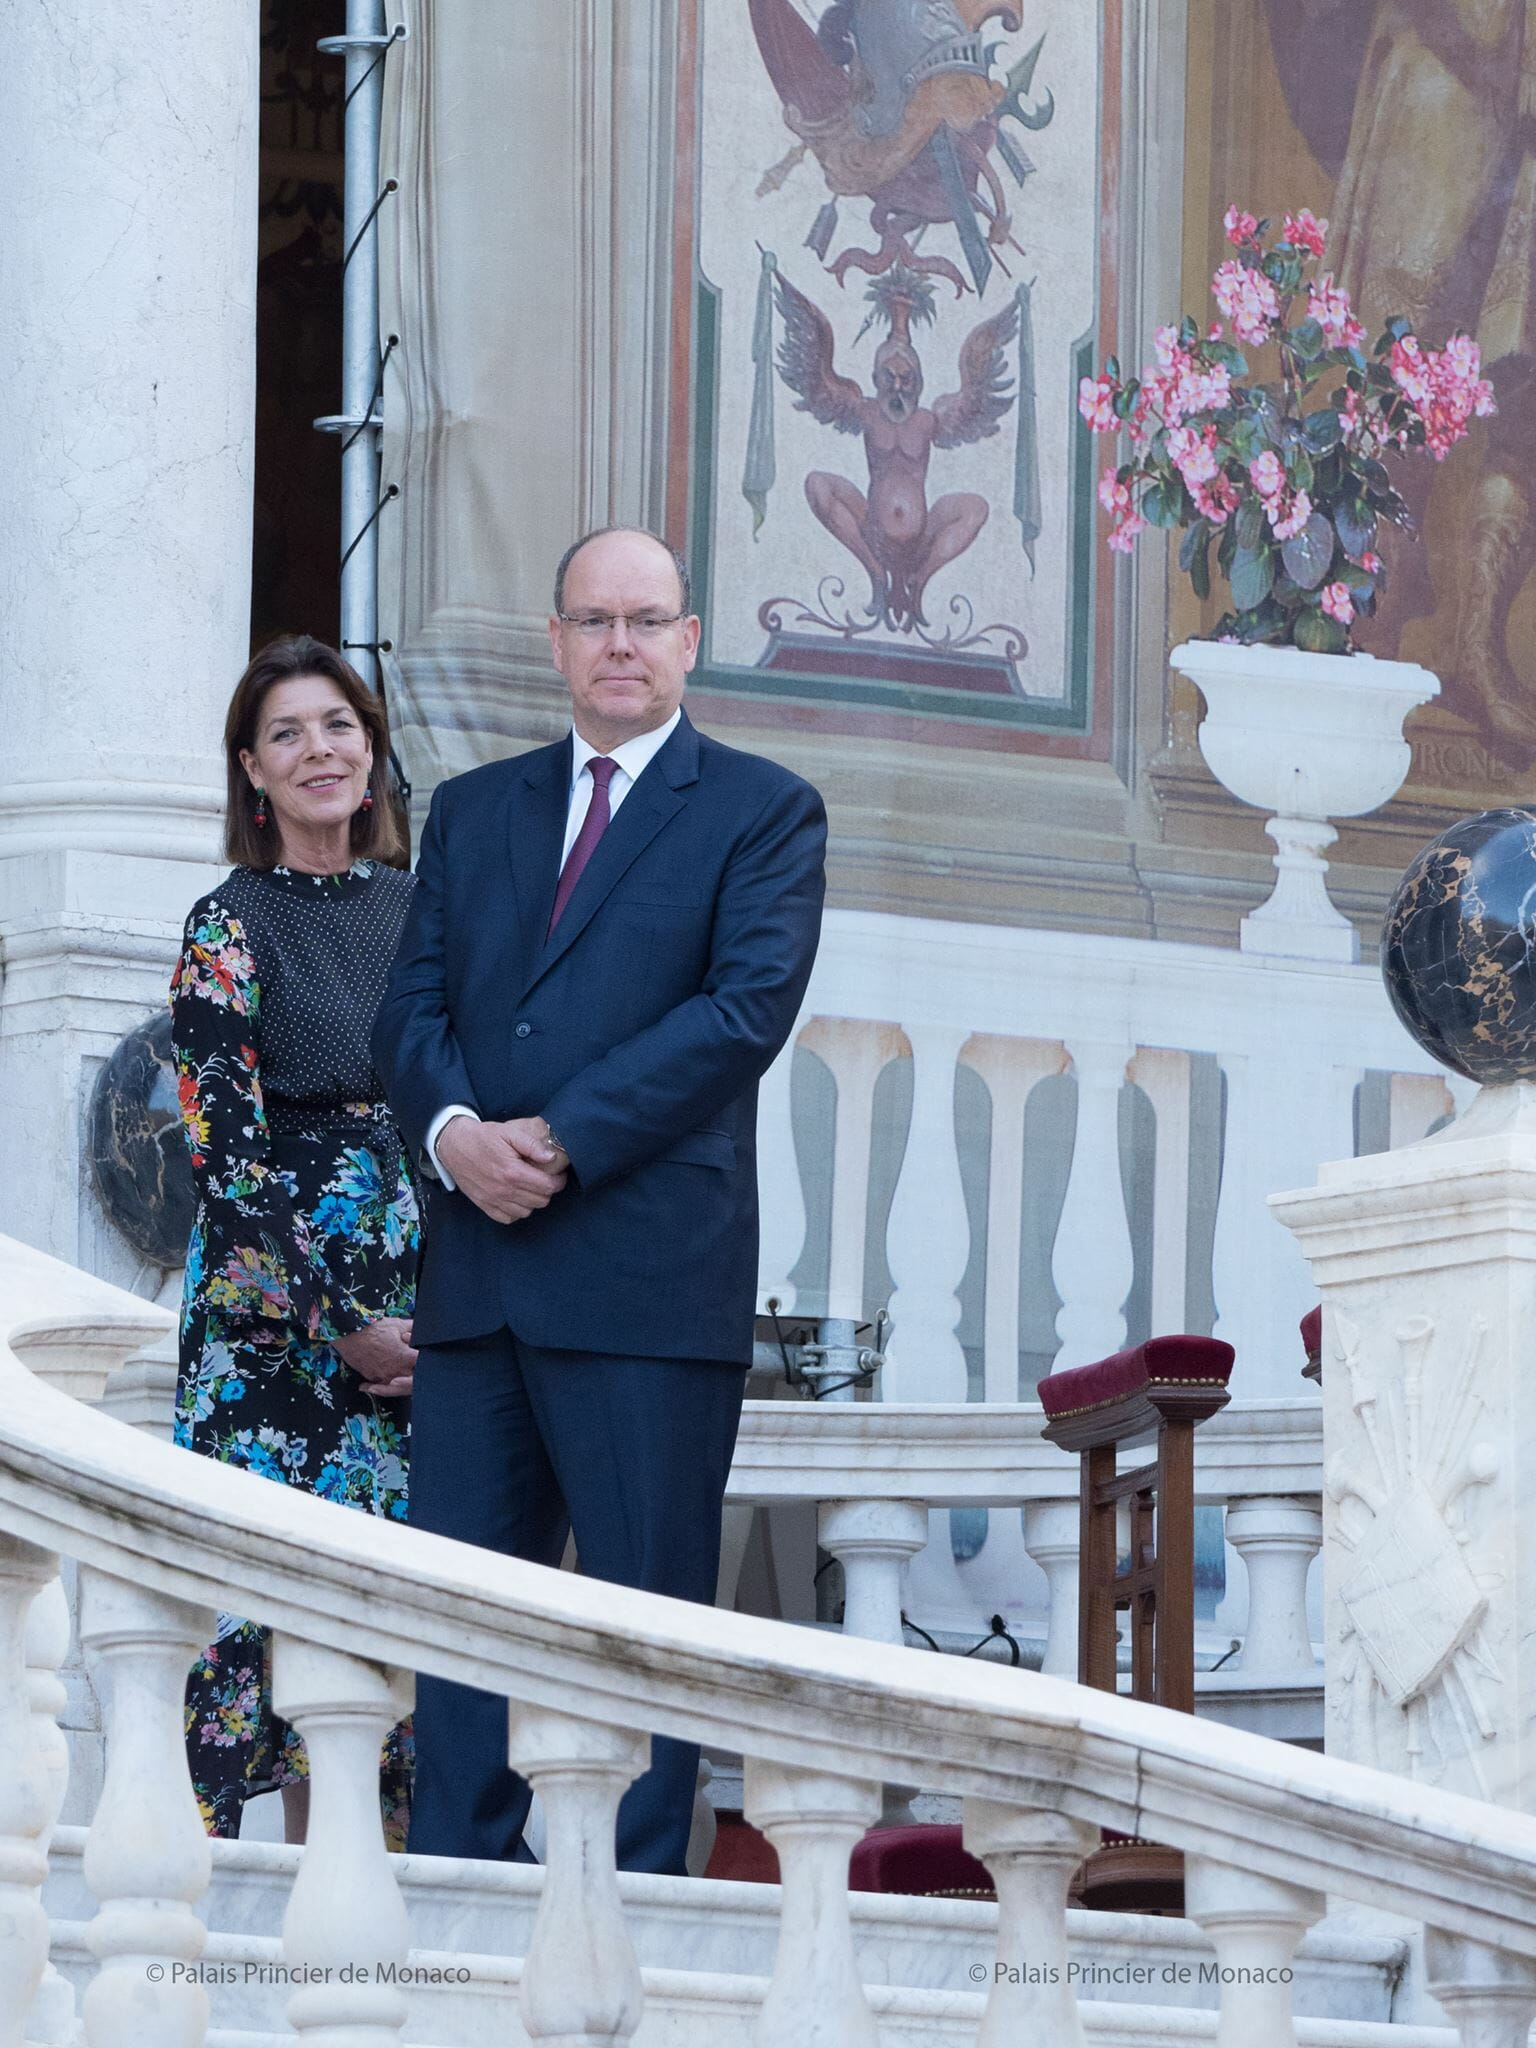 Prince Albert and Princess Caroline Feast of Corpus Christi